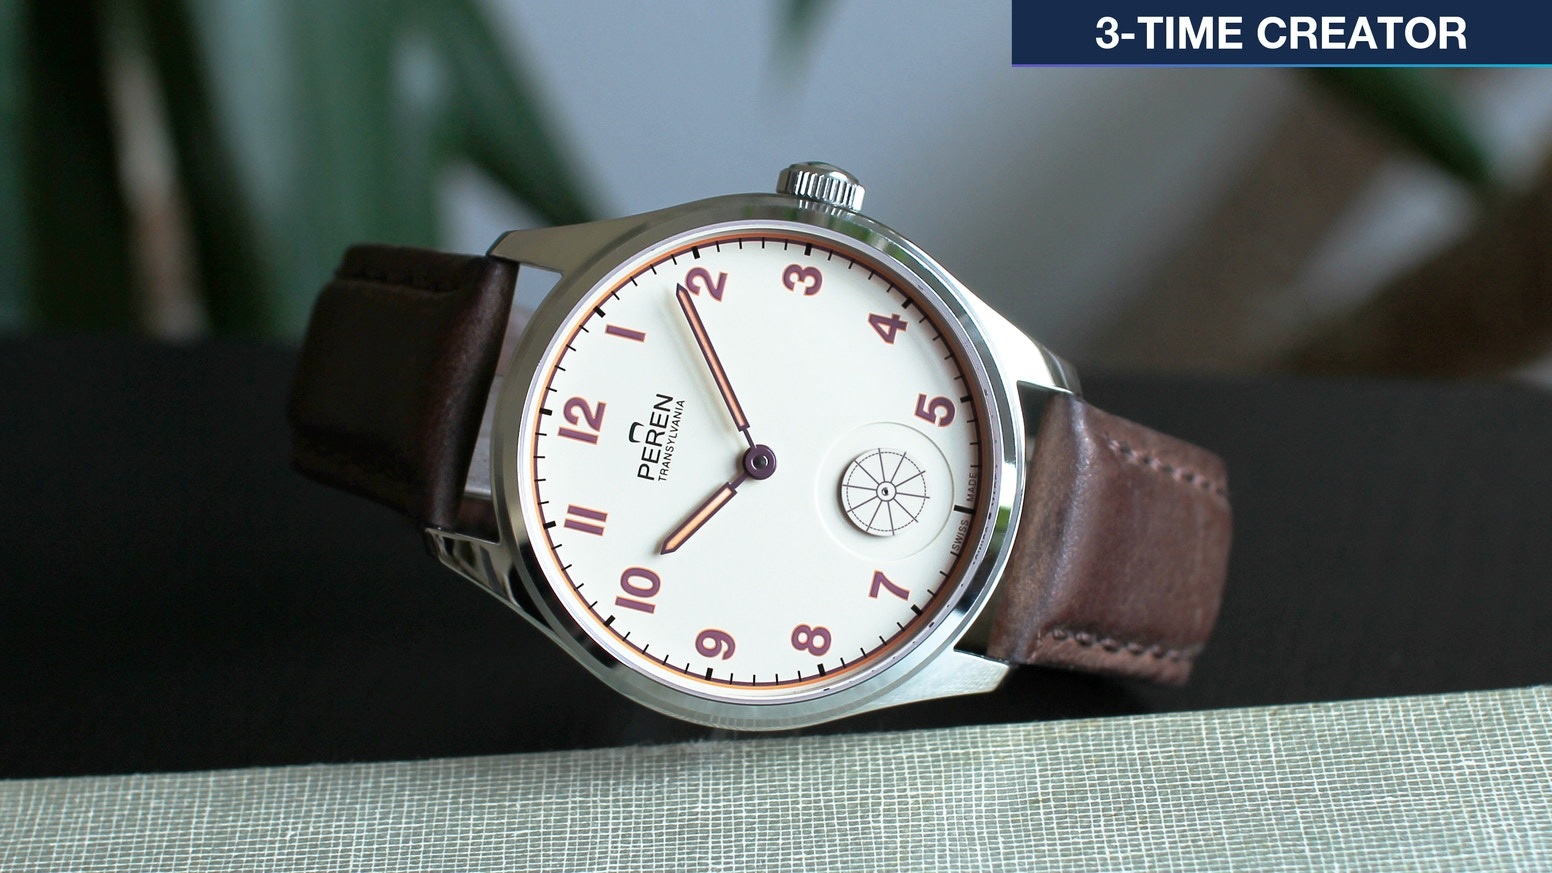 Limited Edition Swiss Made mechanical Watch without the retail markup. Celebrating Swiss and Transylvanian cooperation